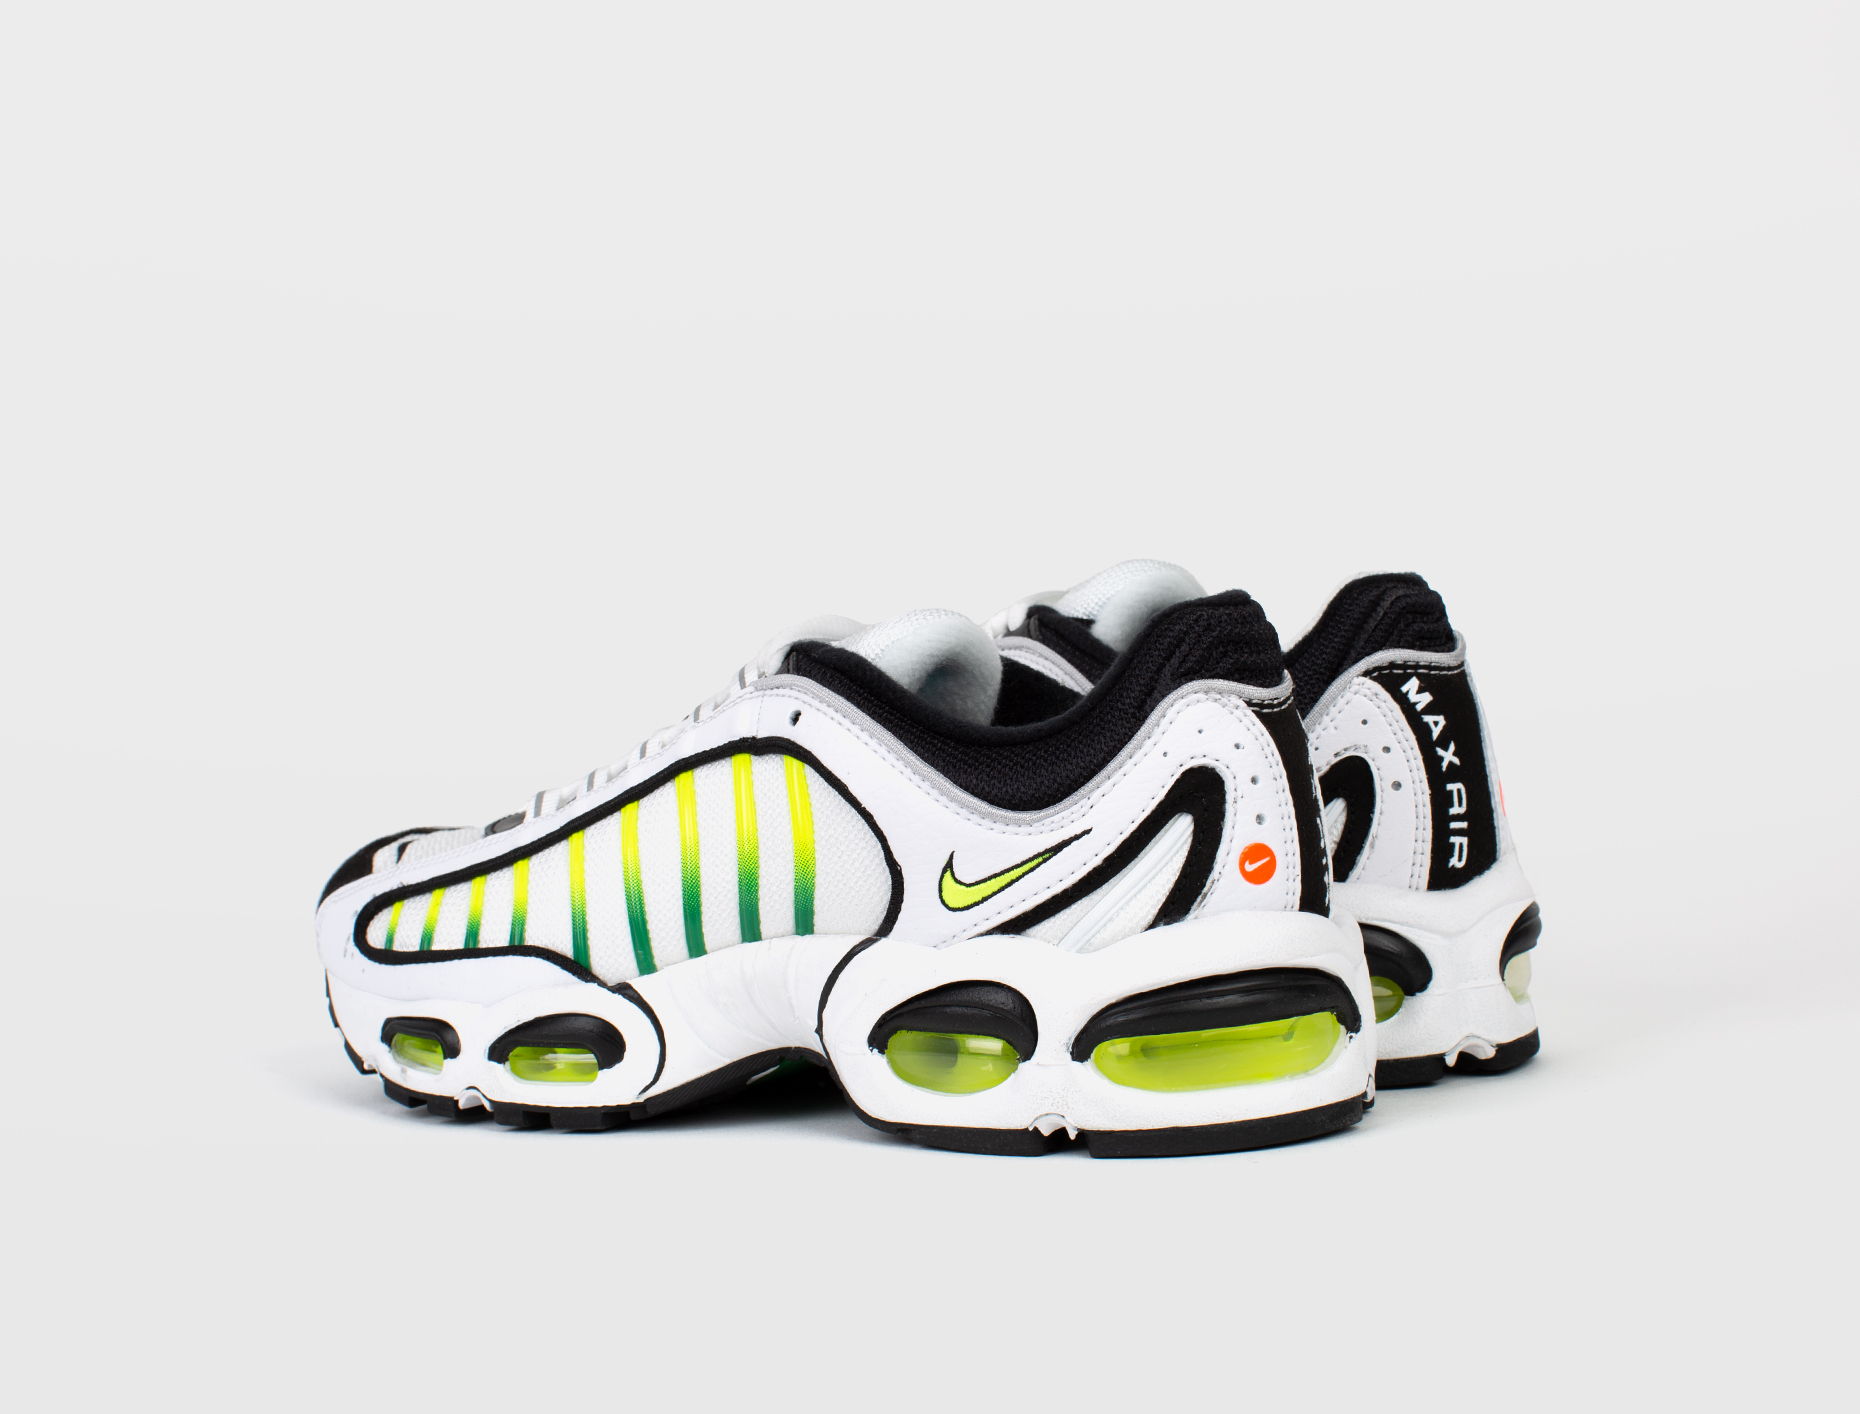 buy online 6560f 1ebf1 ... Preview  Air Max Tailwind IV Sneaker